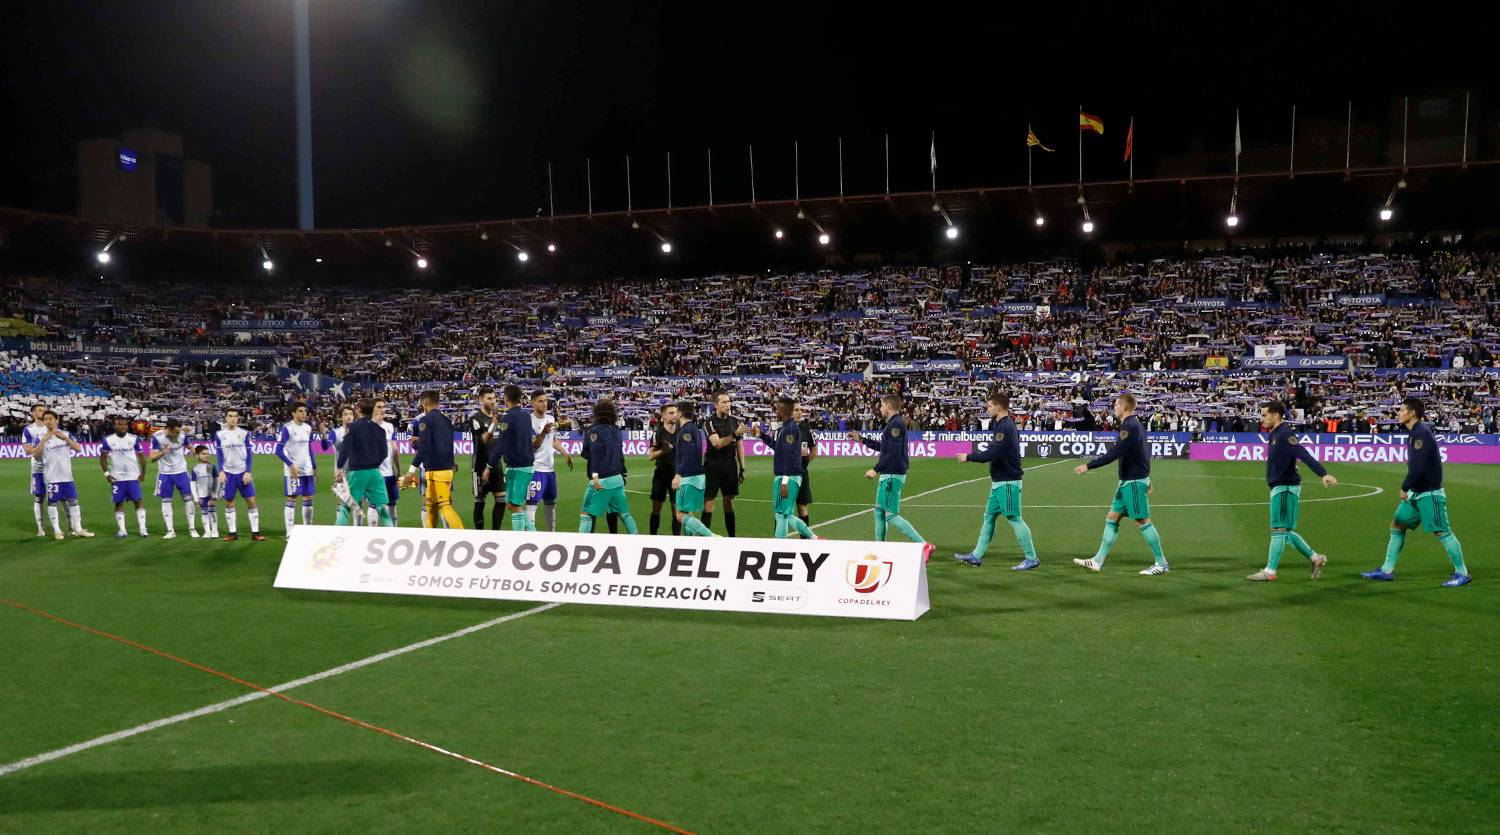 Real Madrid - Real Zaragoza - Real Madrid - 29-01-2020